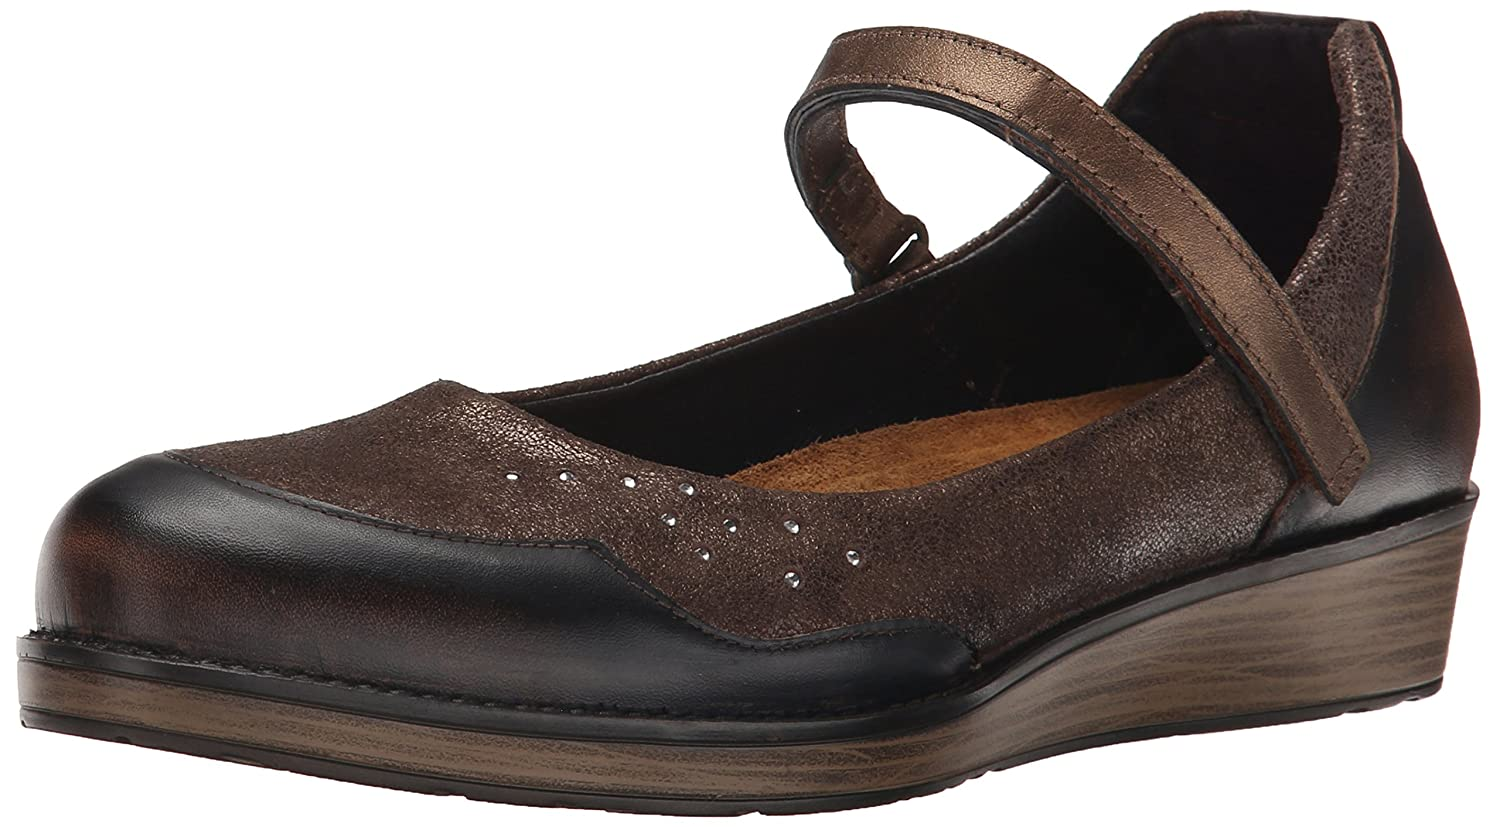 NAOT Women's Sincere Flat B00TQ6OPM8 39 EU/7.5-8 M US|Volcanic Brown/Bronze Shimmer Suede/Grecian Gold Leather